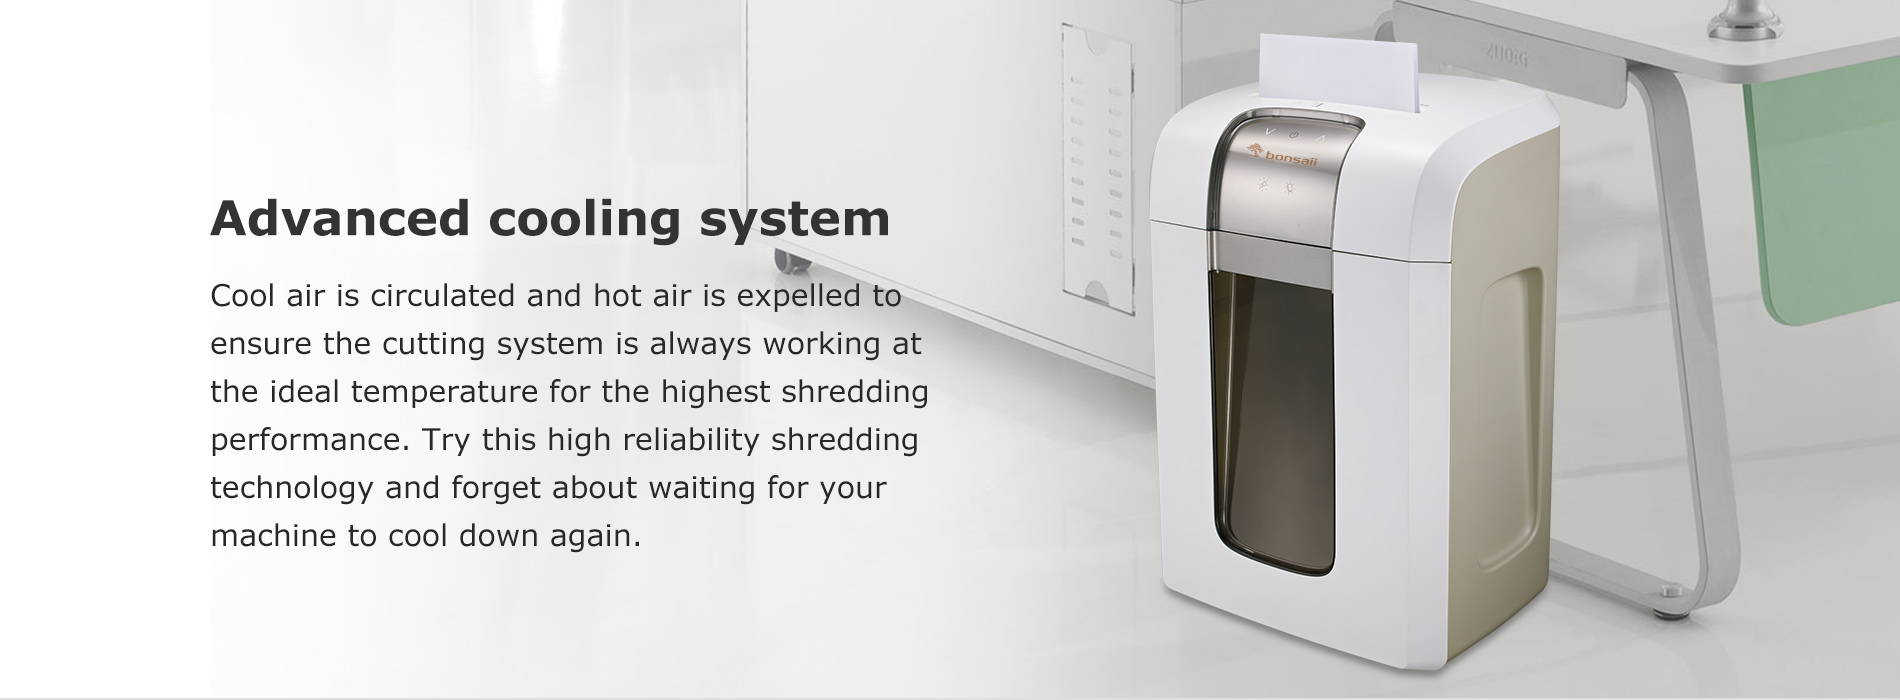 Advanced cooling system  Cool air is circulated and hot air is expelled to ensure the cutting system is always working at the ideal temperature for the highest shredding performance. Try this high reliability shredding technology and forget about waiting for your machine to cool down again.